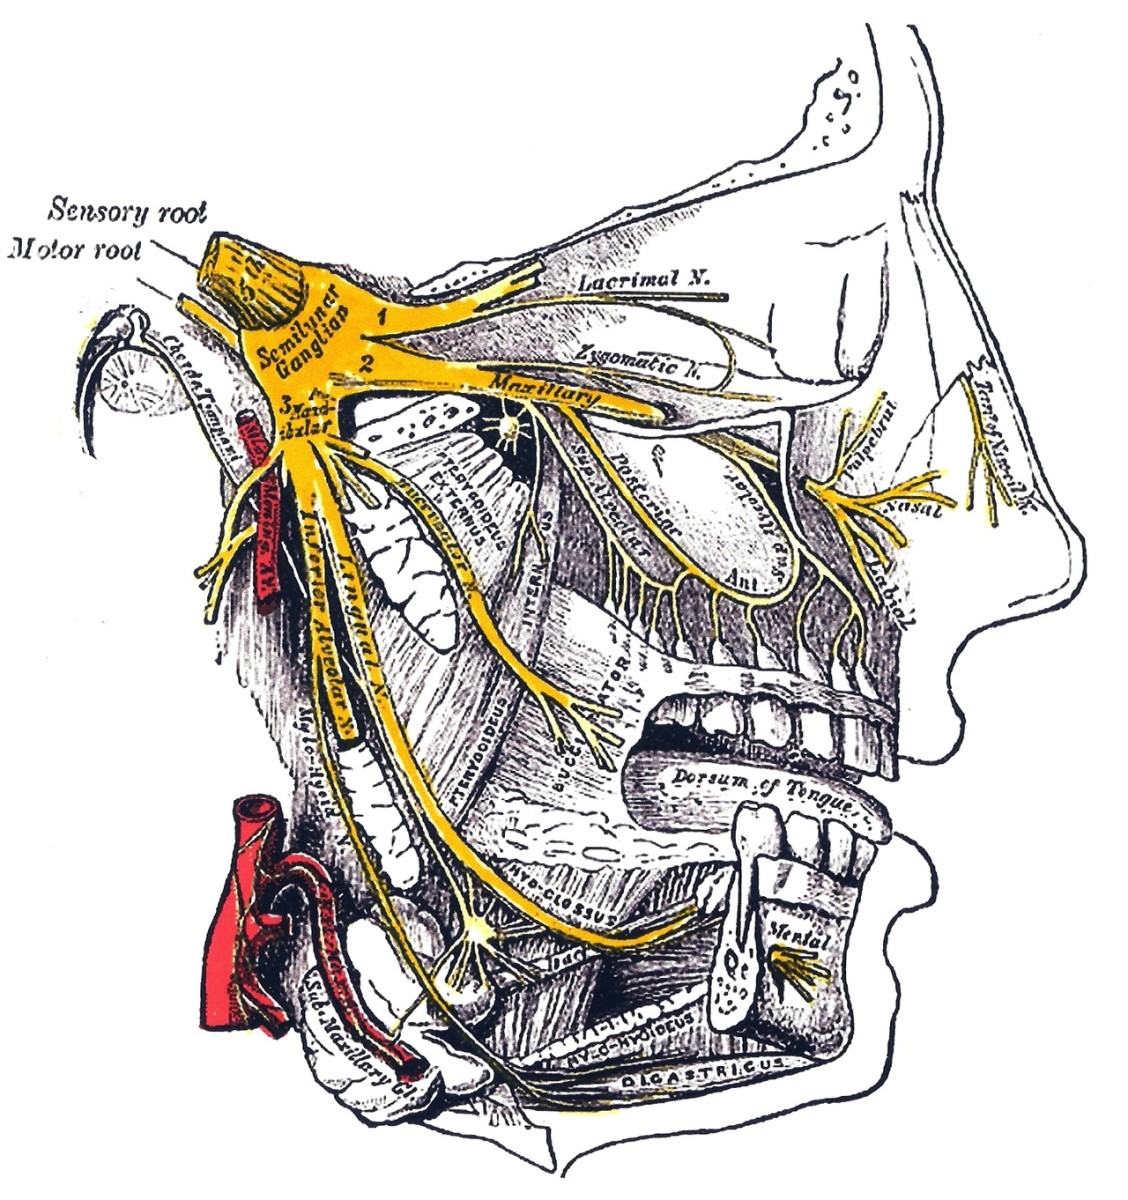 The trigeminal nerve and its branches through the face